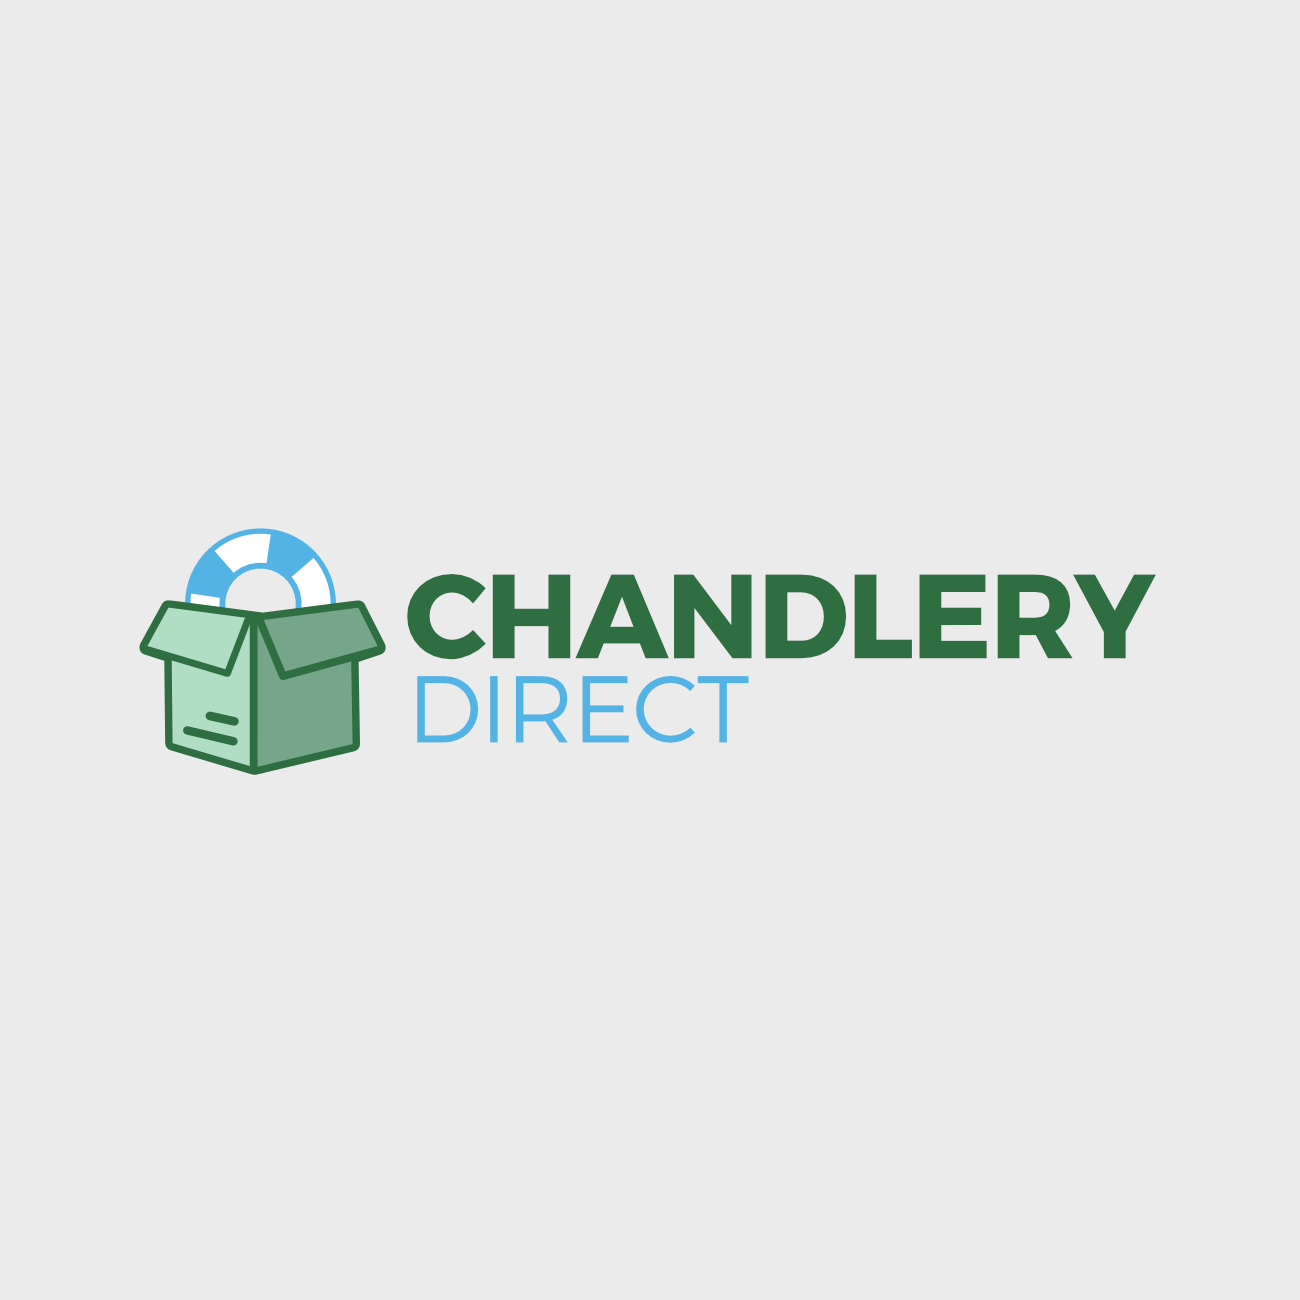 Chandlery Direct logo for online store